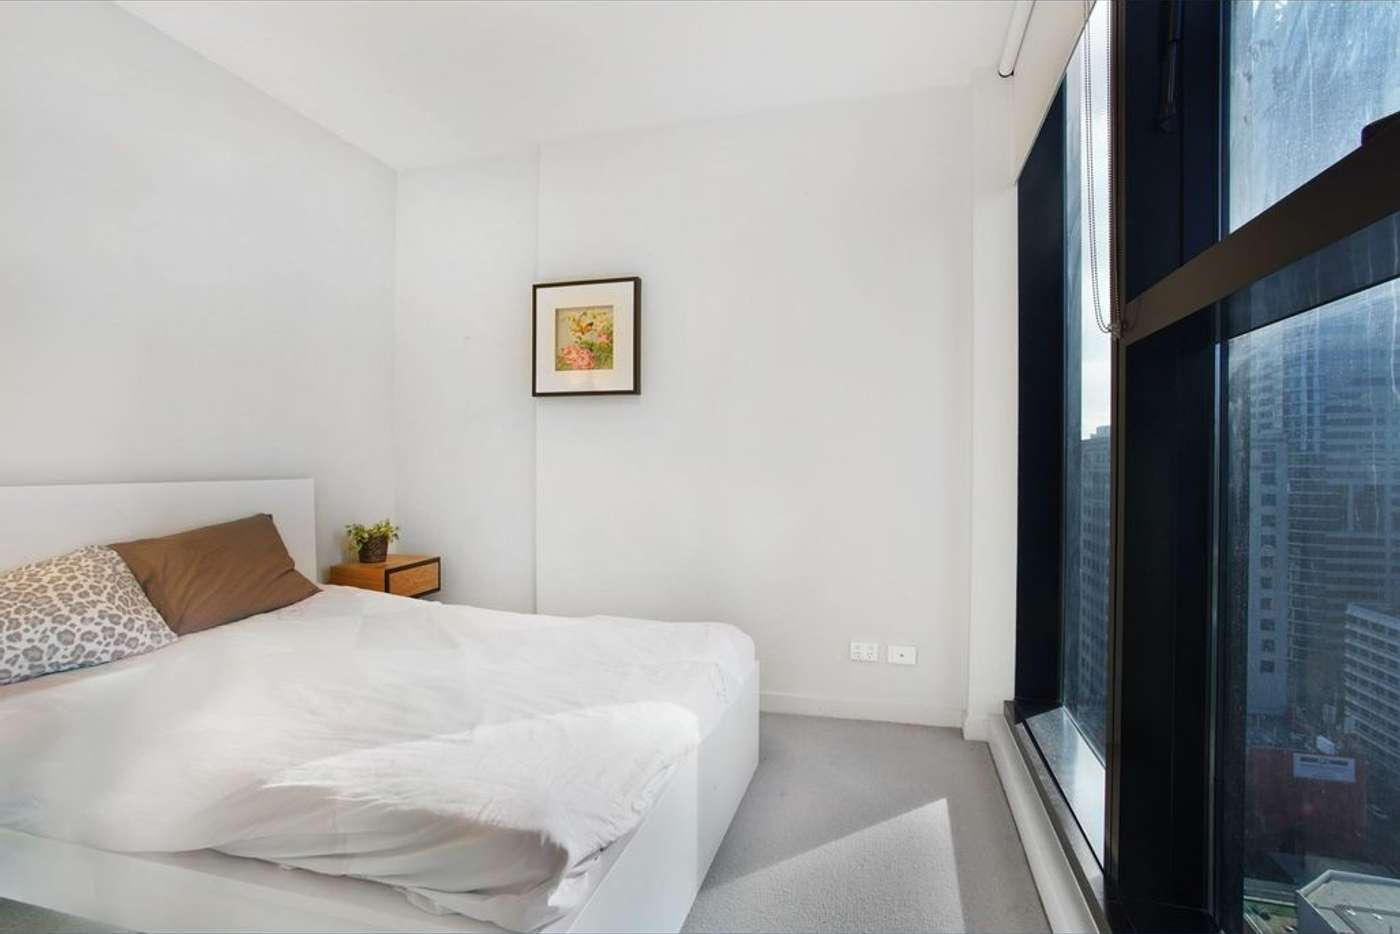 Sixth view of Homely apartment listing, 2402/568 Collins Street, Melbourne VIC 3000